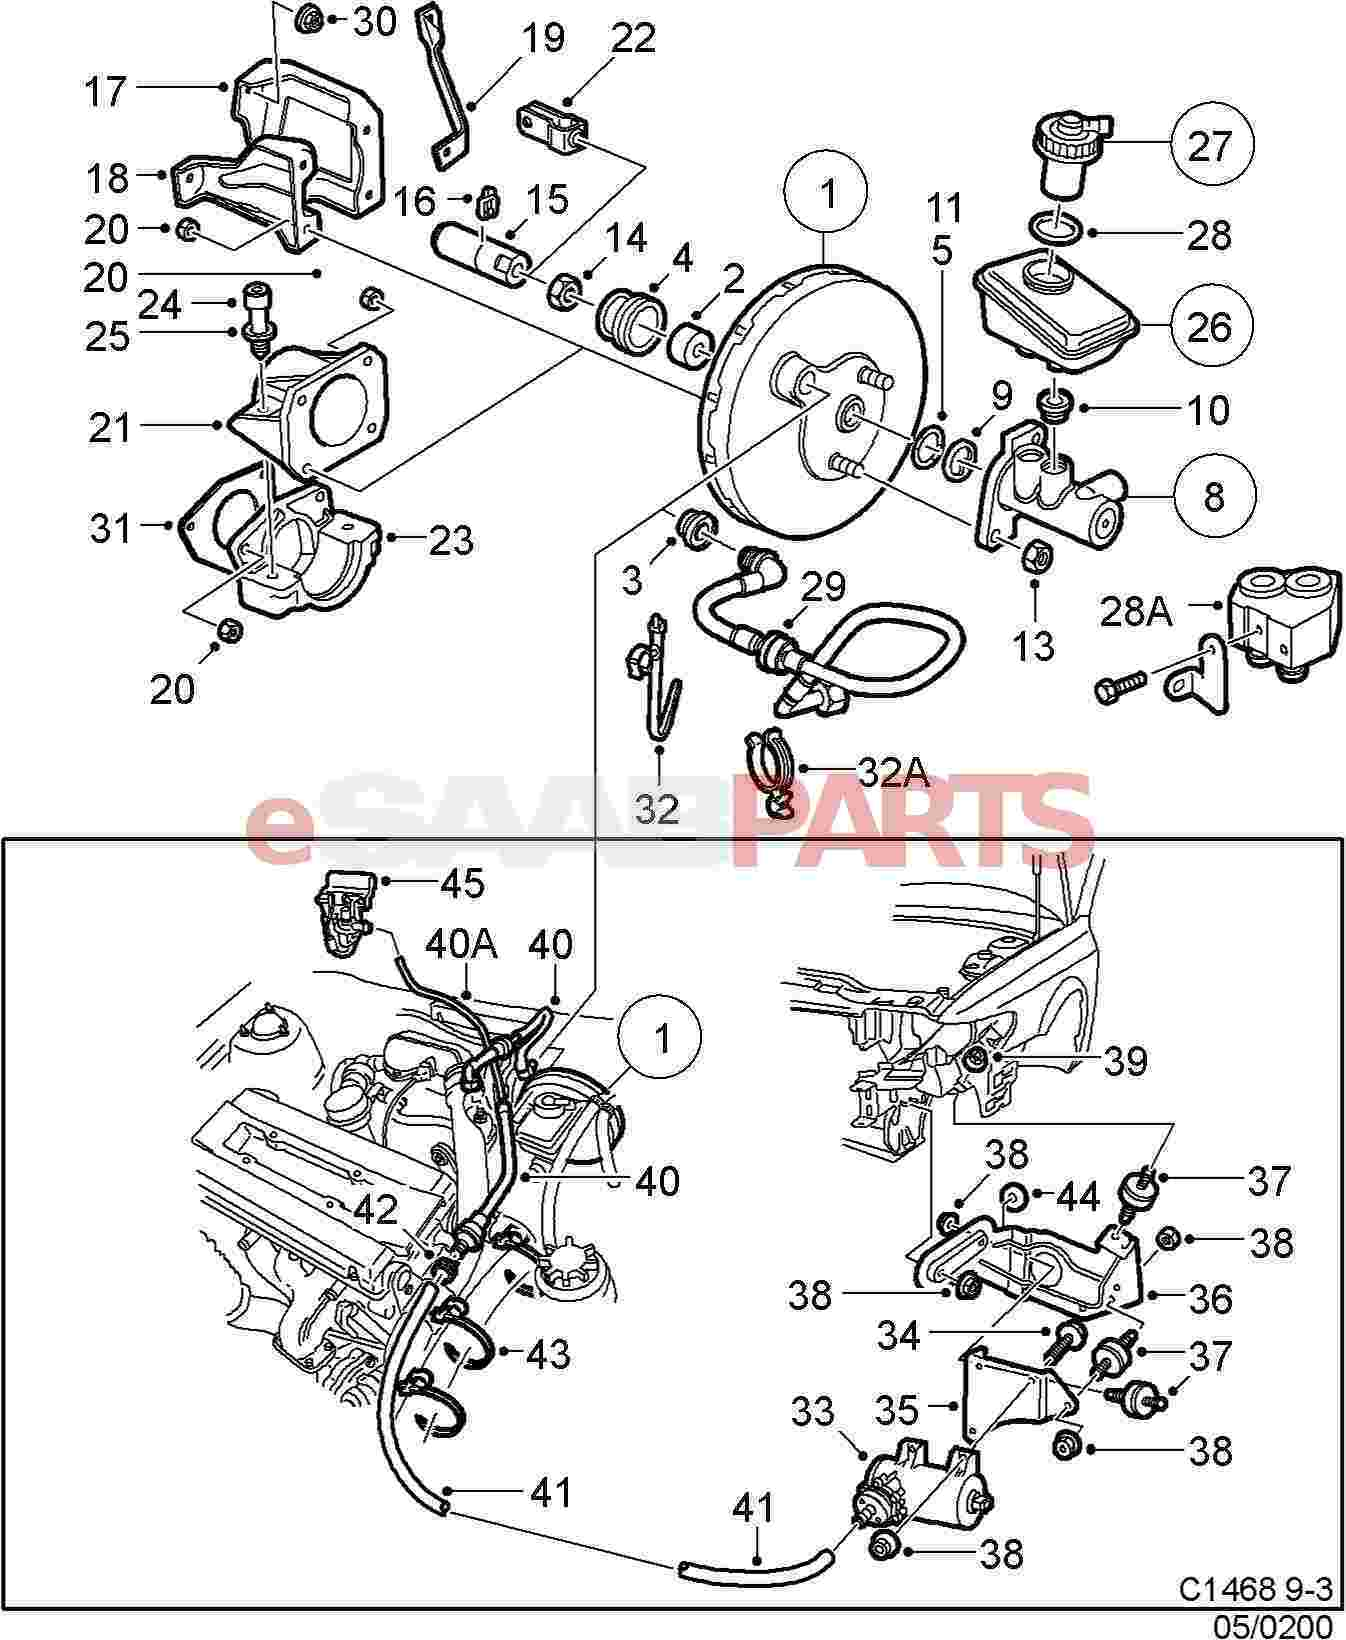 99 Saab 9 5 Turbo Diagram Layout Wiring Diagrams 22 Hp Briggs And Stratton Engine Will Be A Thing U2022 Rh Exploreandmore Co Uk